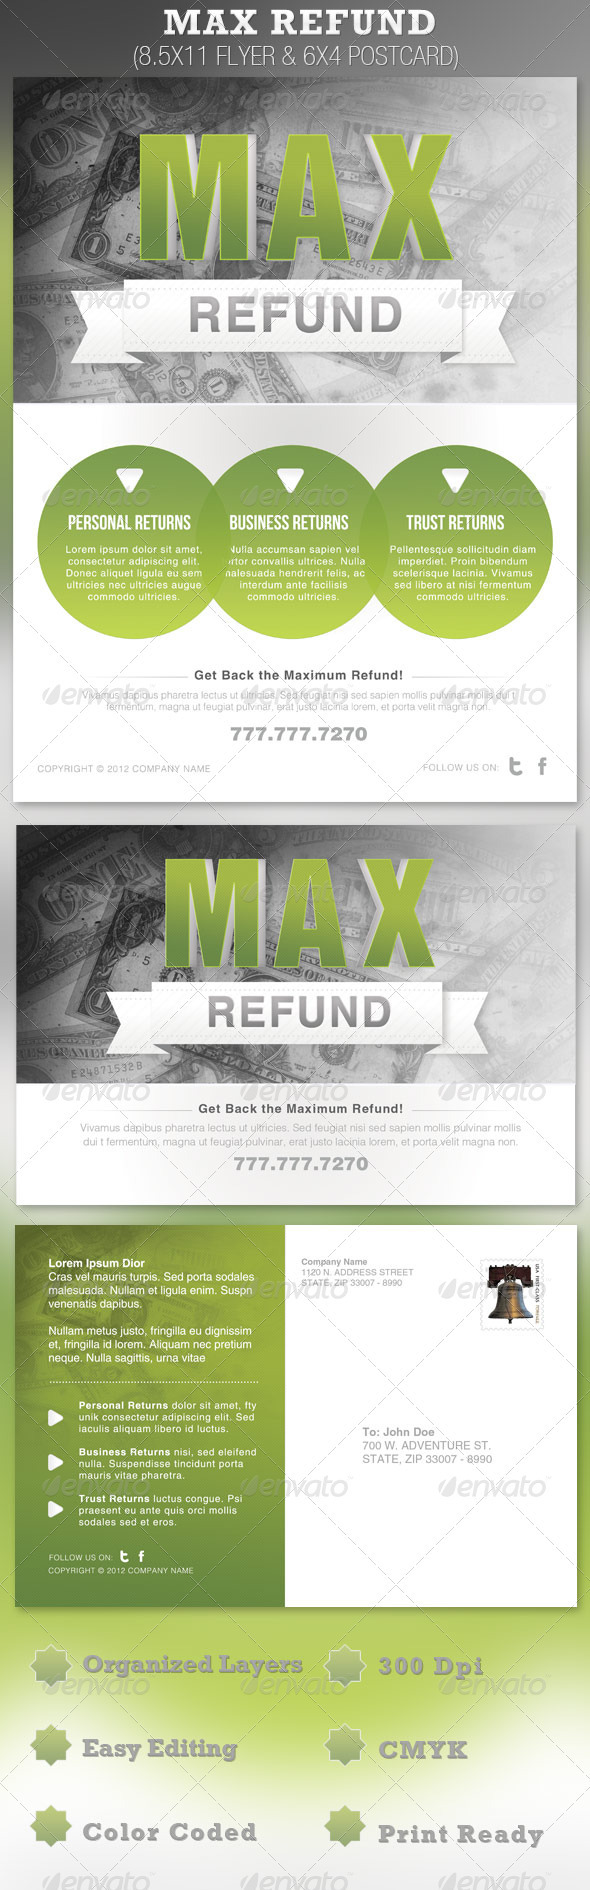 Max Refund Flyer and Postcard Template - Corporate Flyers